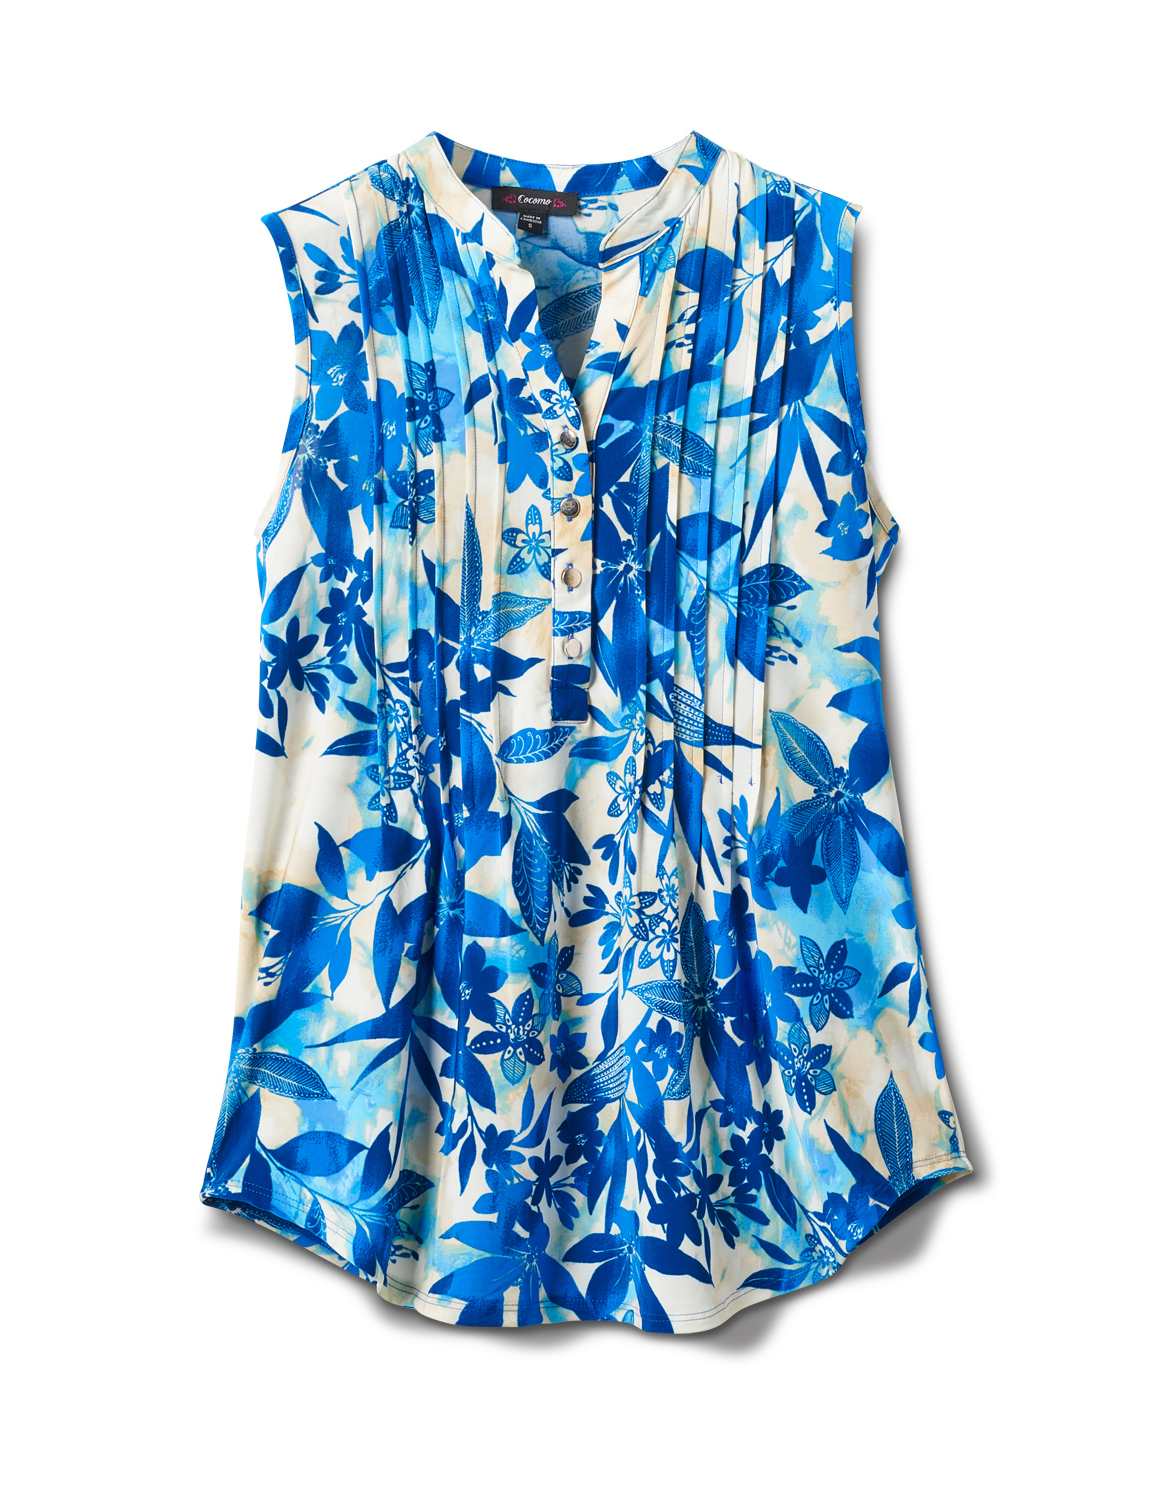 Shades Of Blue Floral Sleevless Knit Popover -Navy/Blue/Taupe - Front